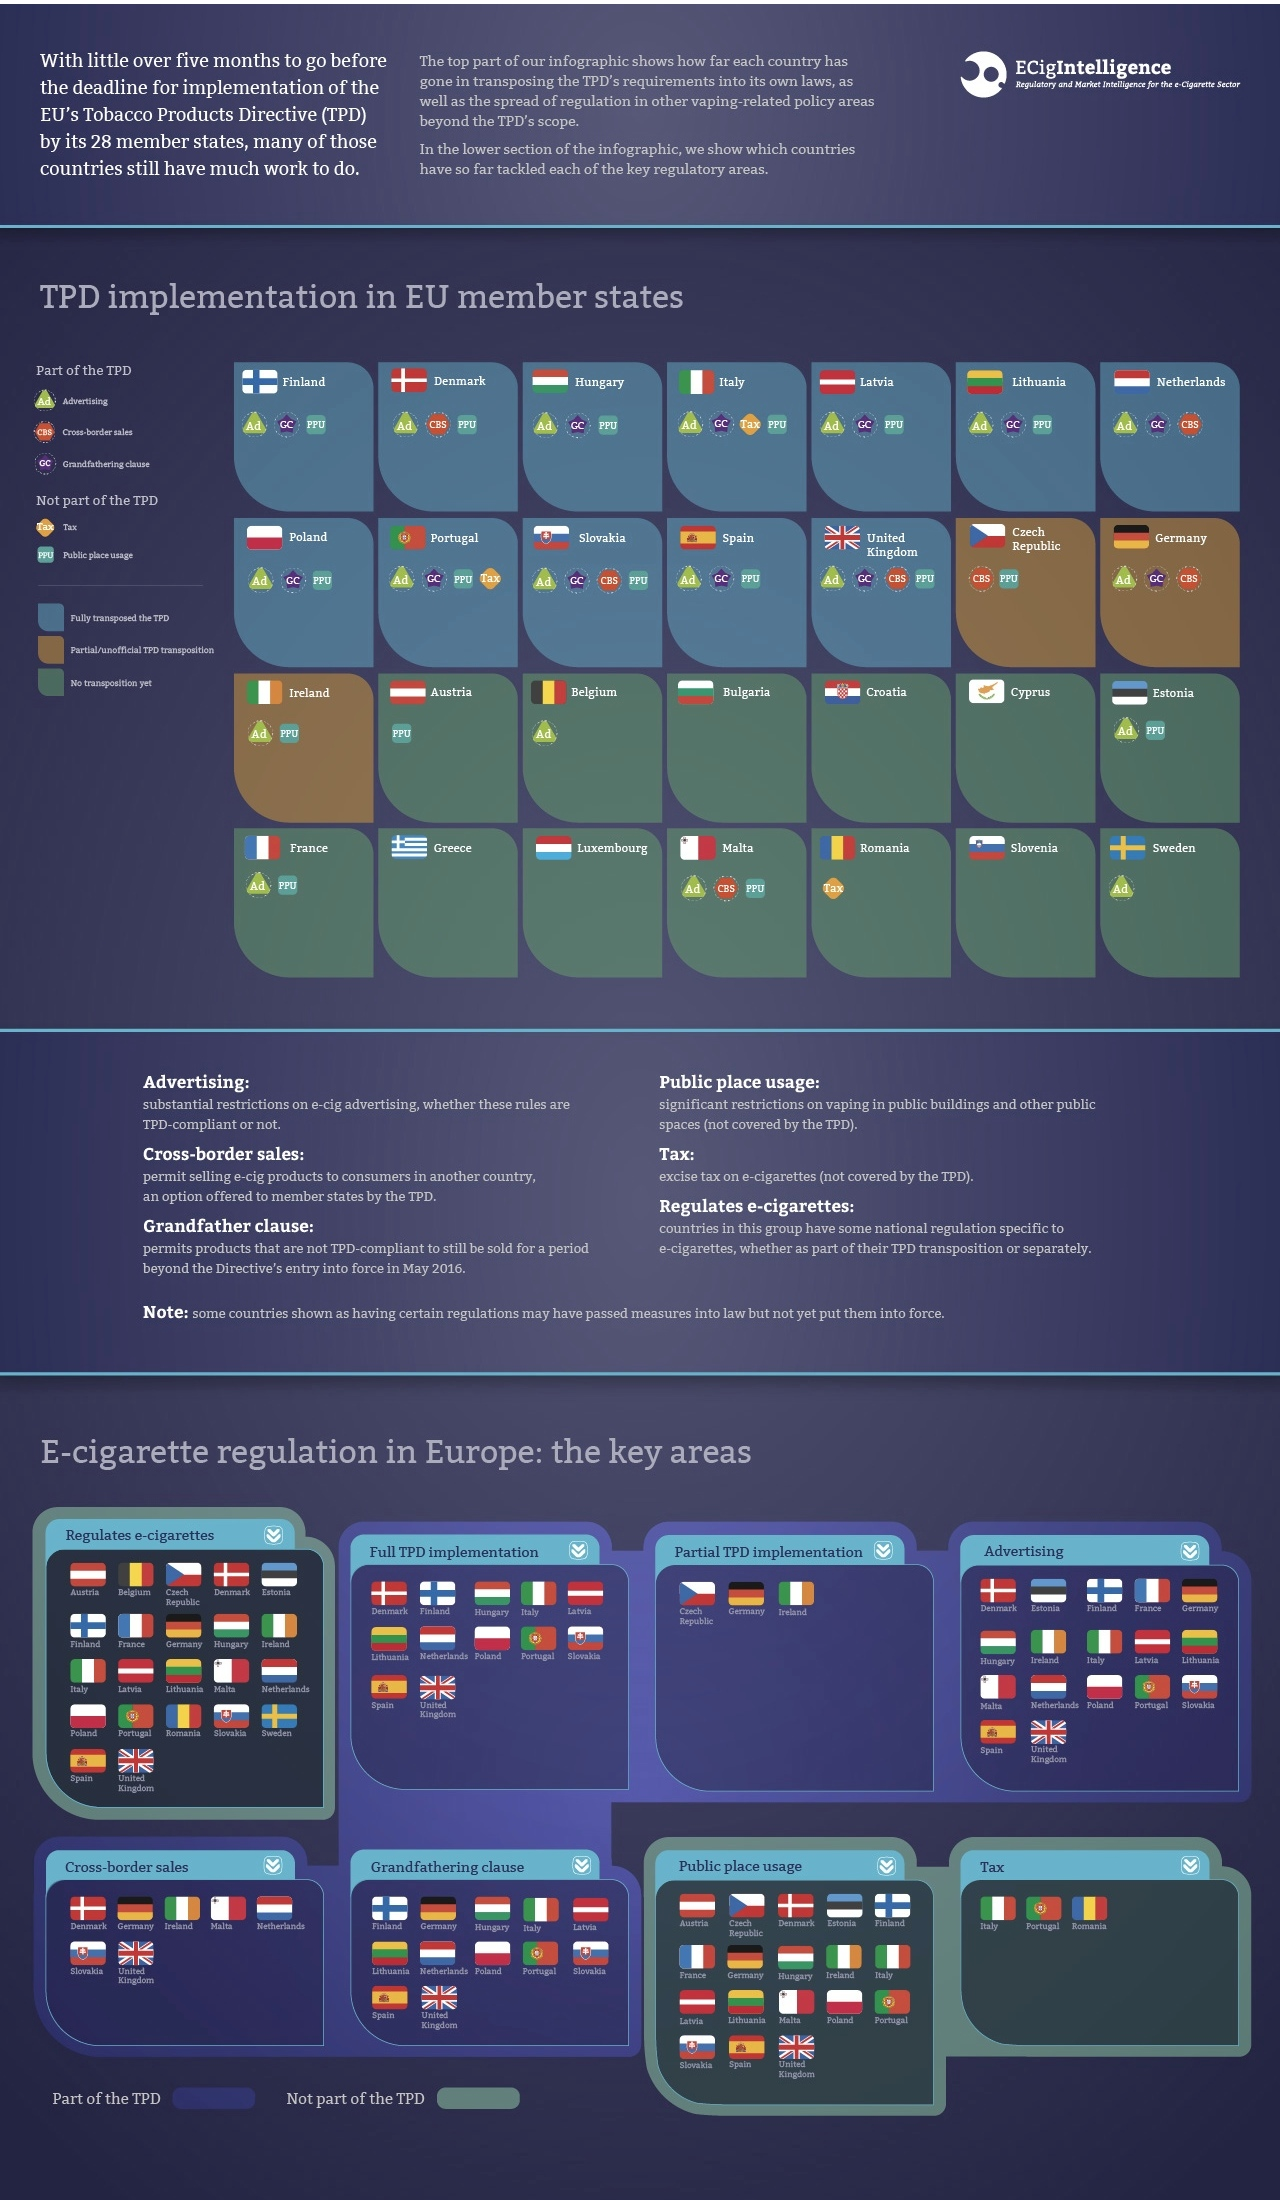 updated ECigIntelligence TPD transposition and European e-cig regulation infographic Dec 2015